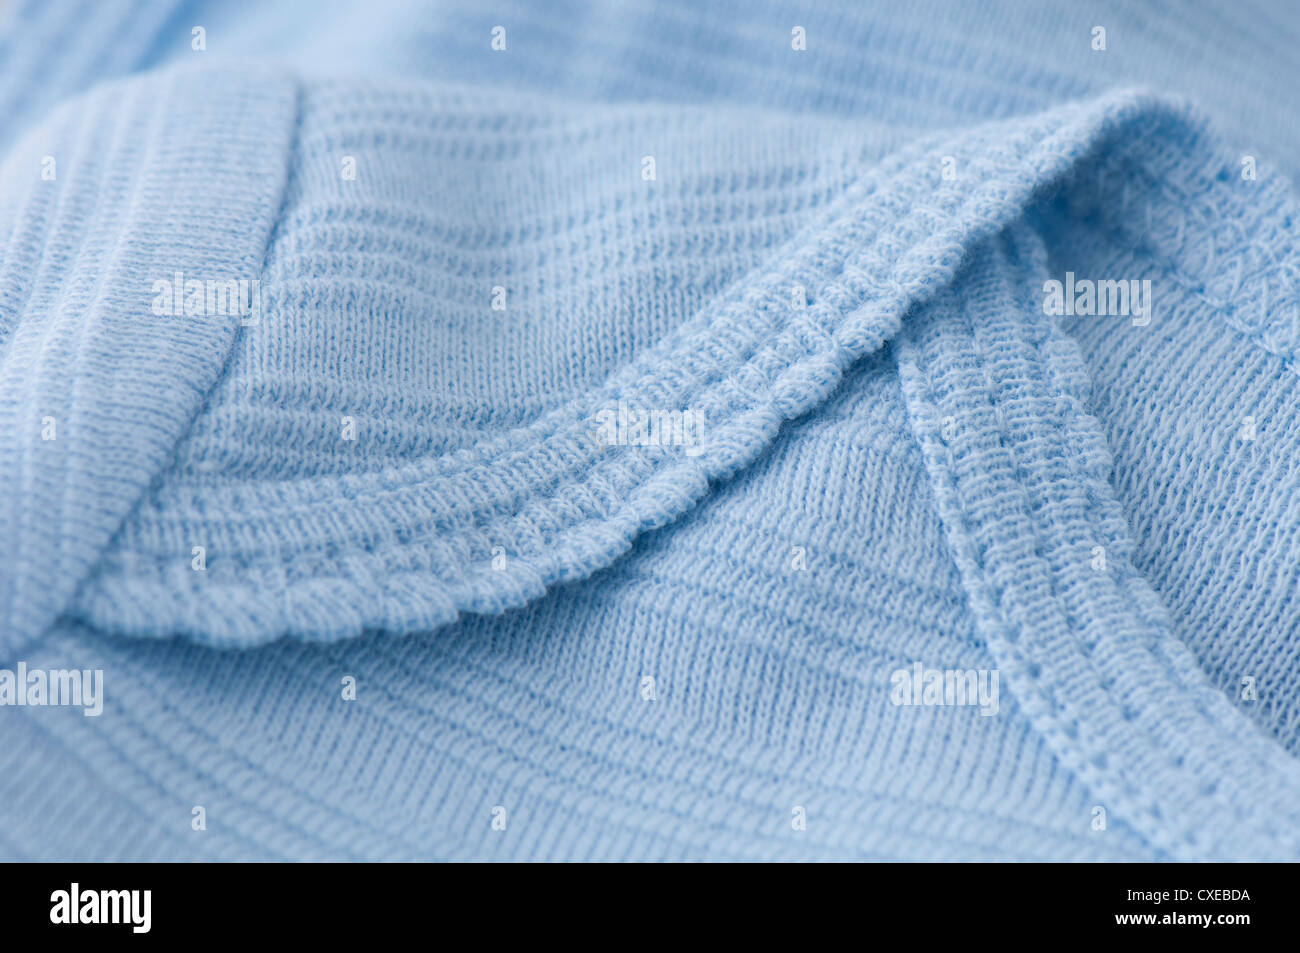 Knitted baby clothing, close-up - Stock Image